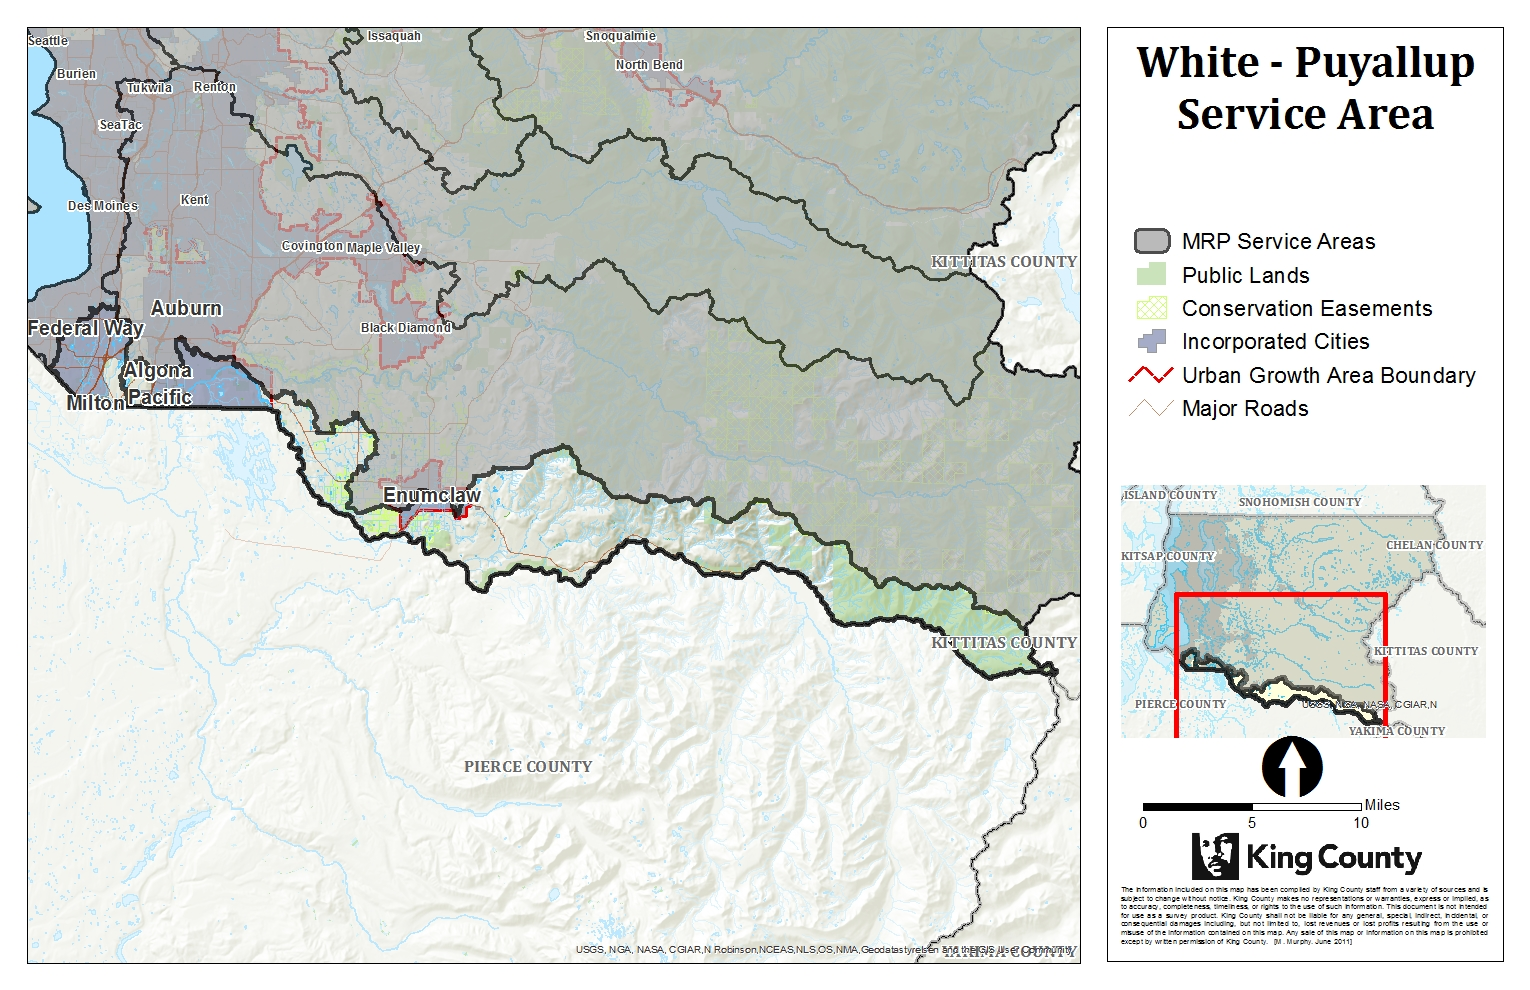 White River / Puyallup River Service Area - King County